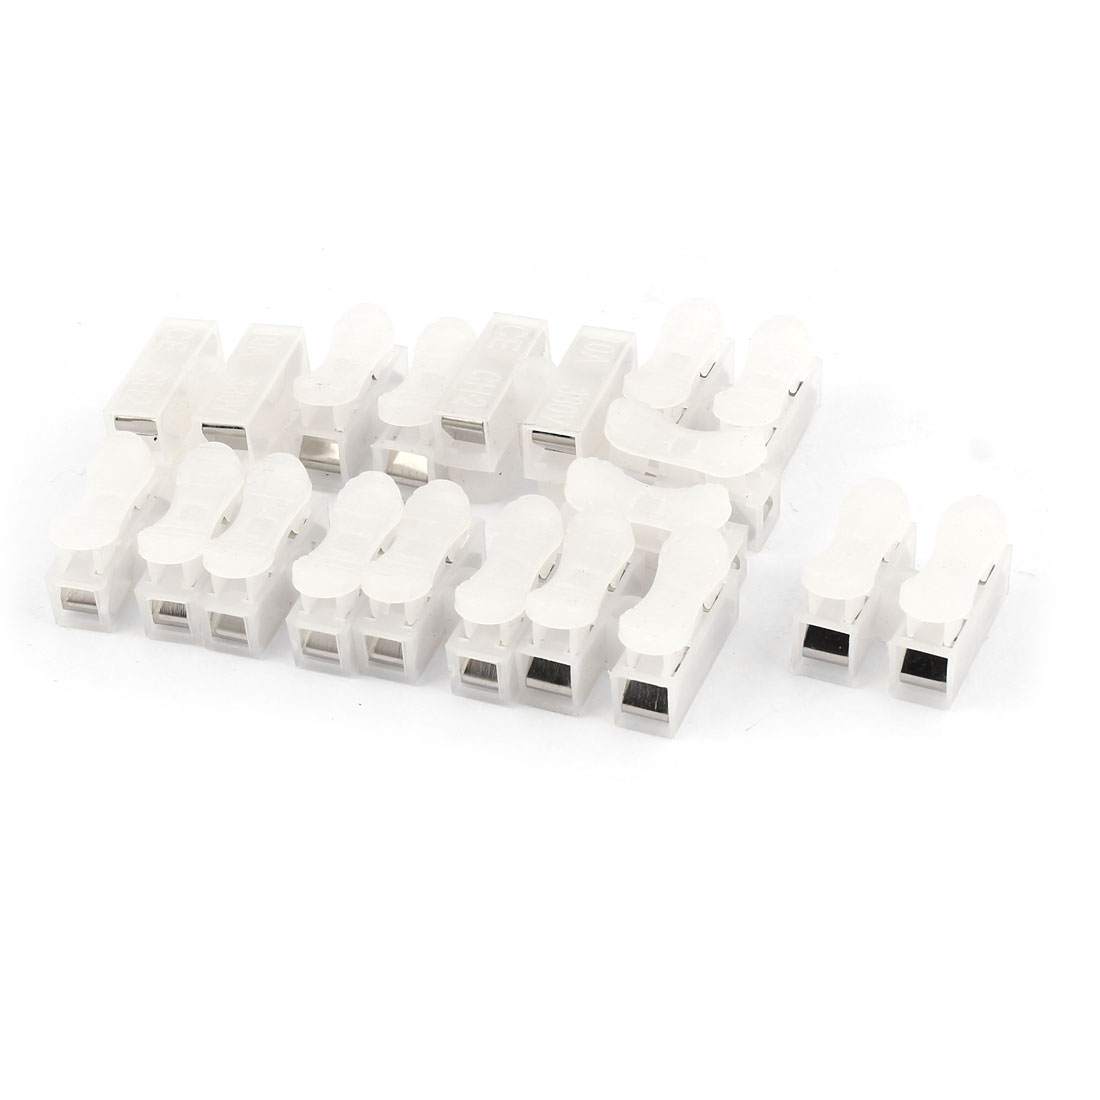 6 Pcs Wire Connection 2 Position Barrier Screw Terminal Strip Block 380V 10A